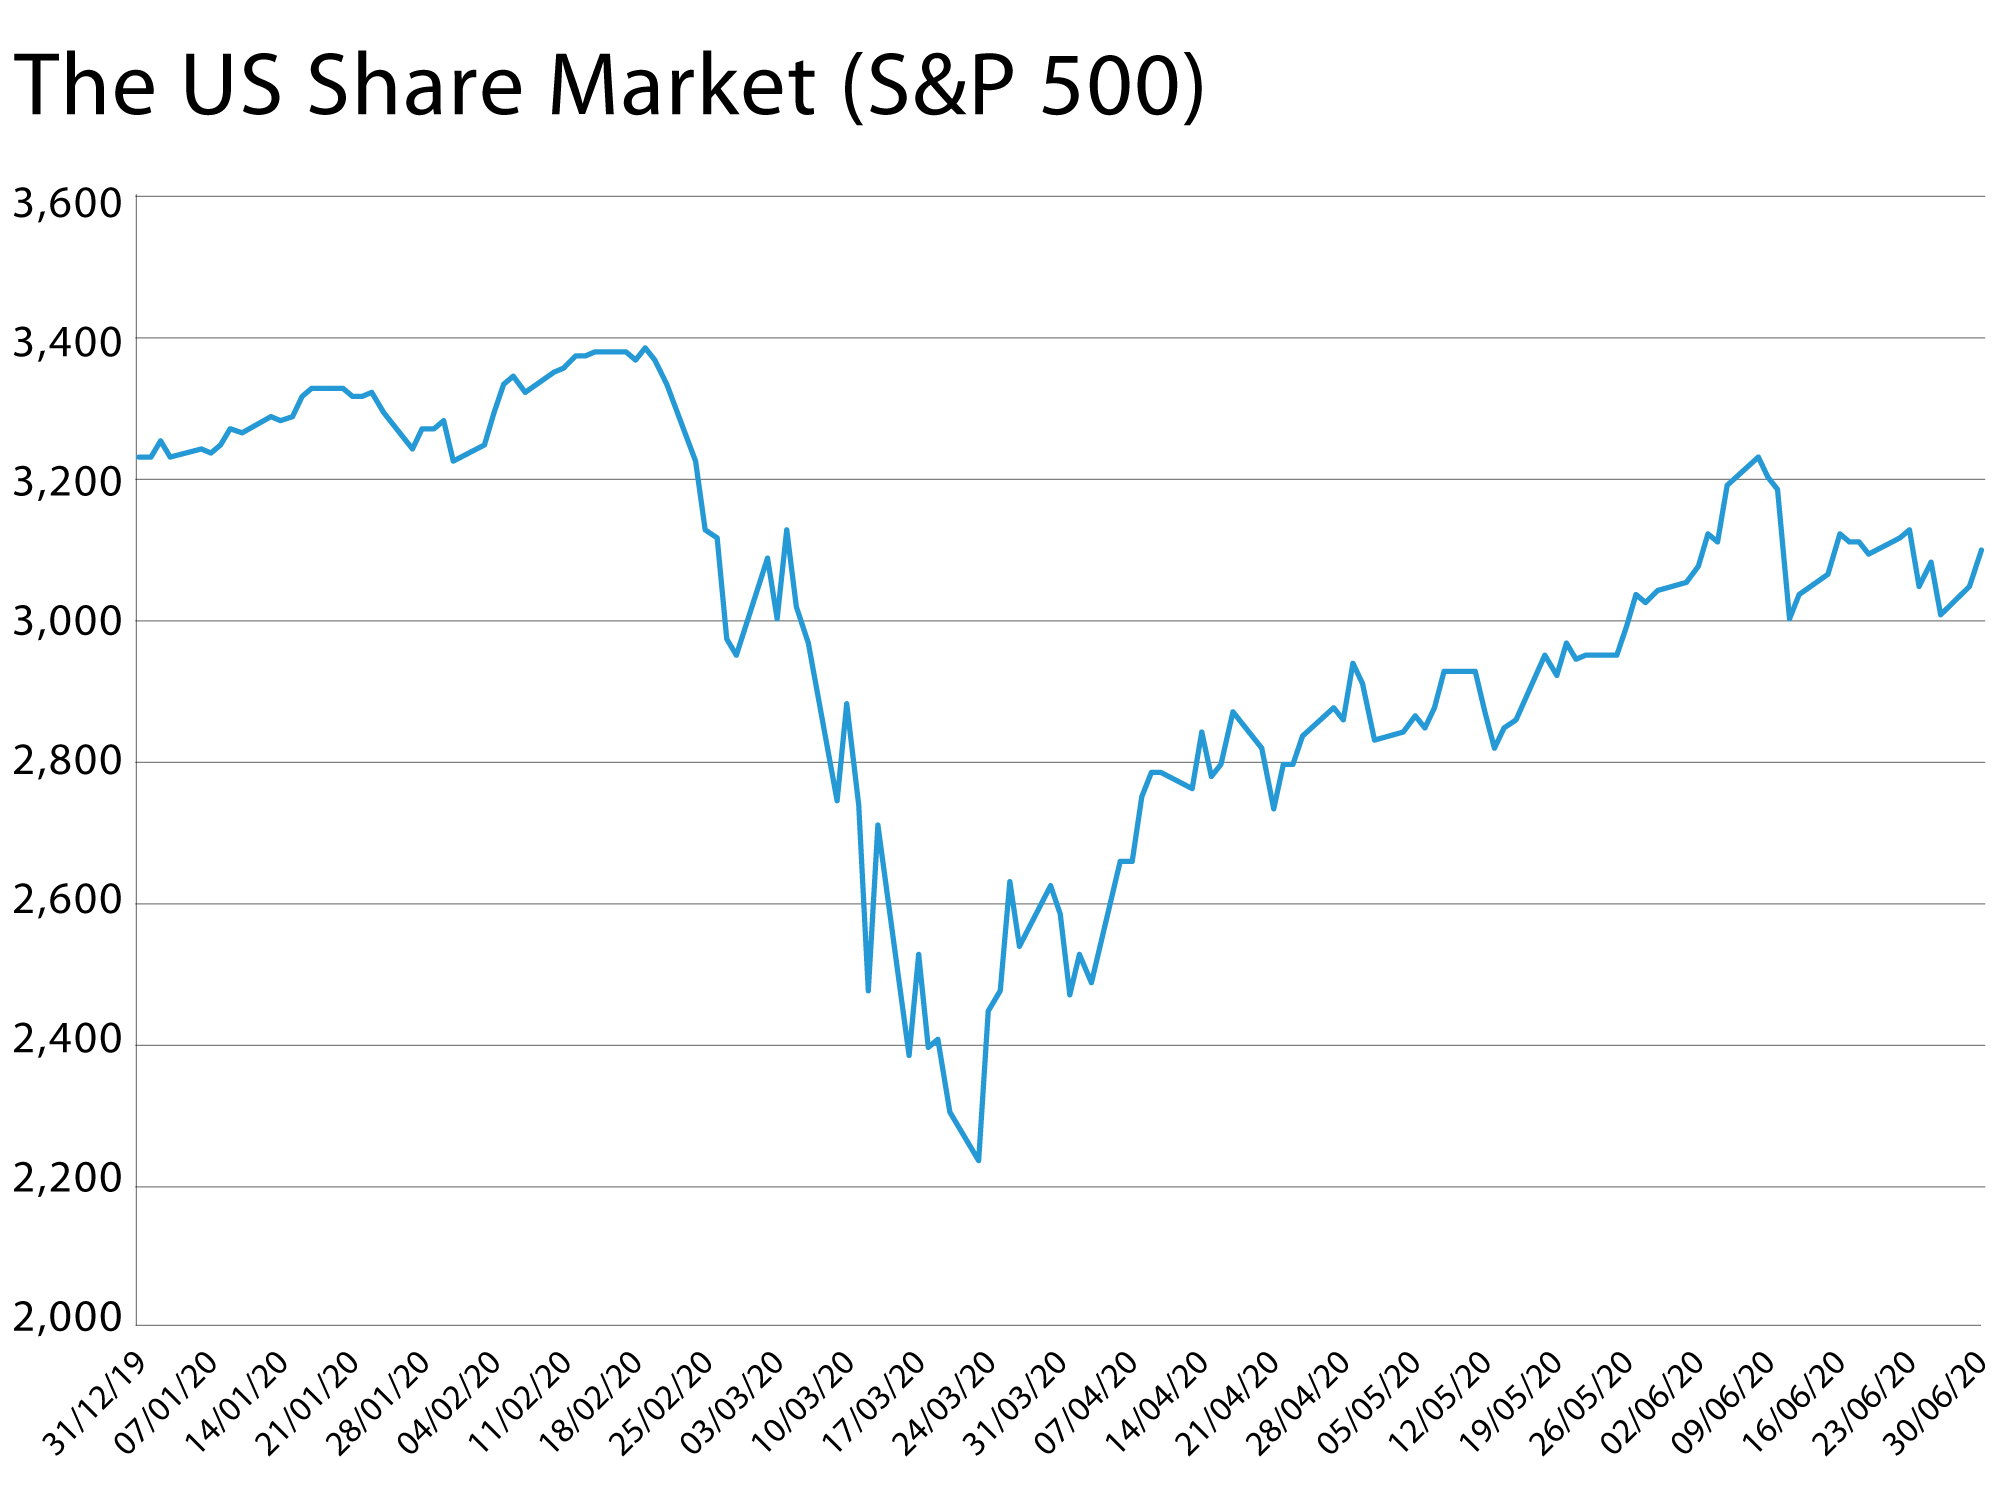 The US Share Market (S&P 500) graph